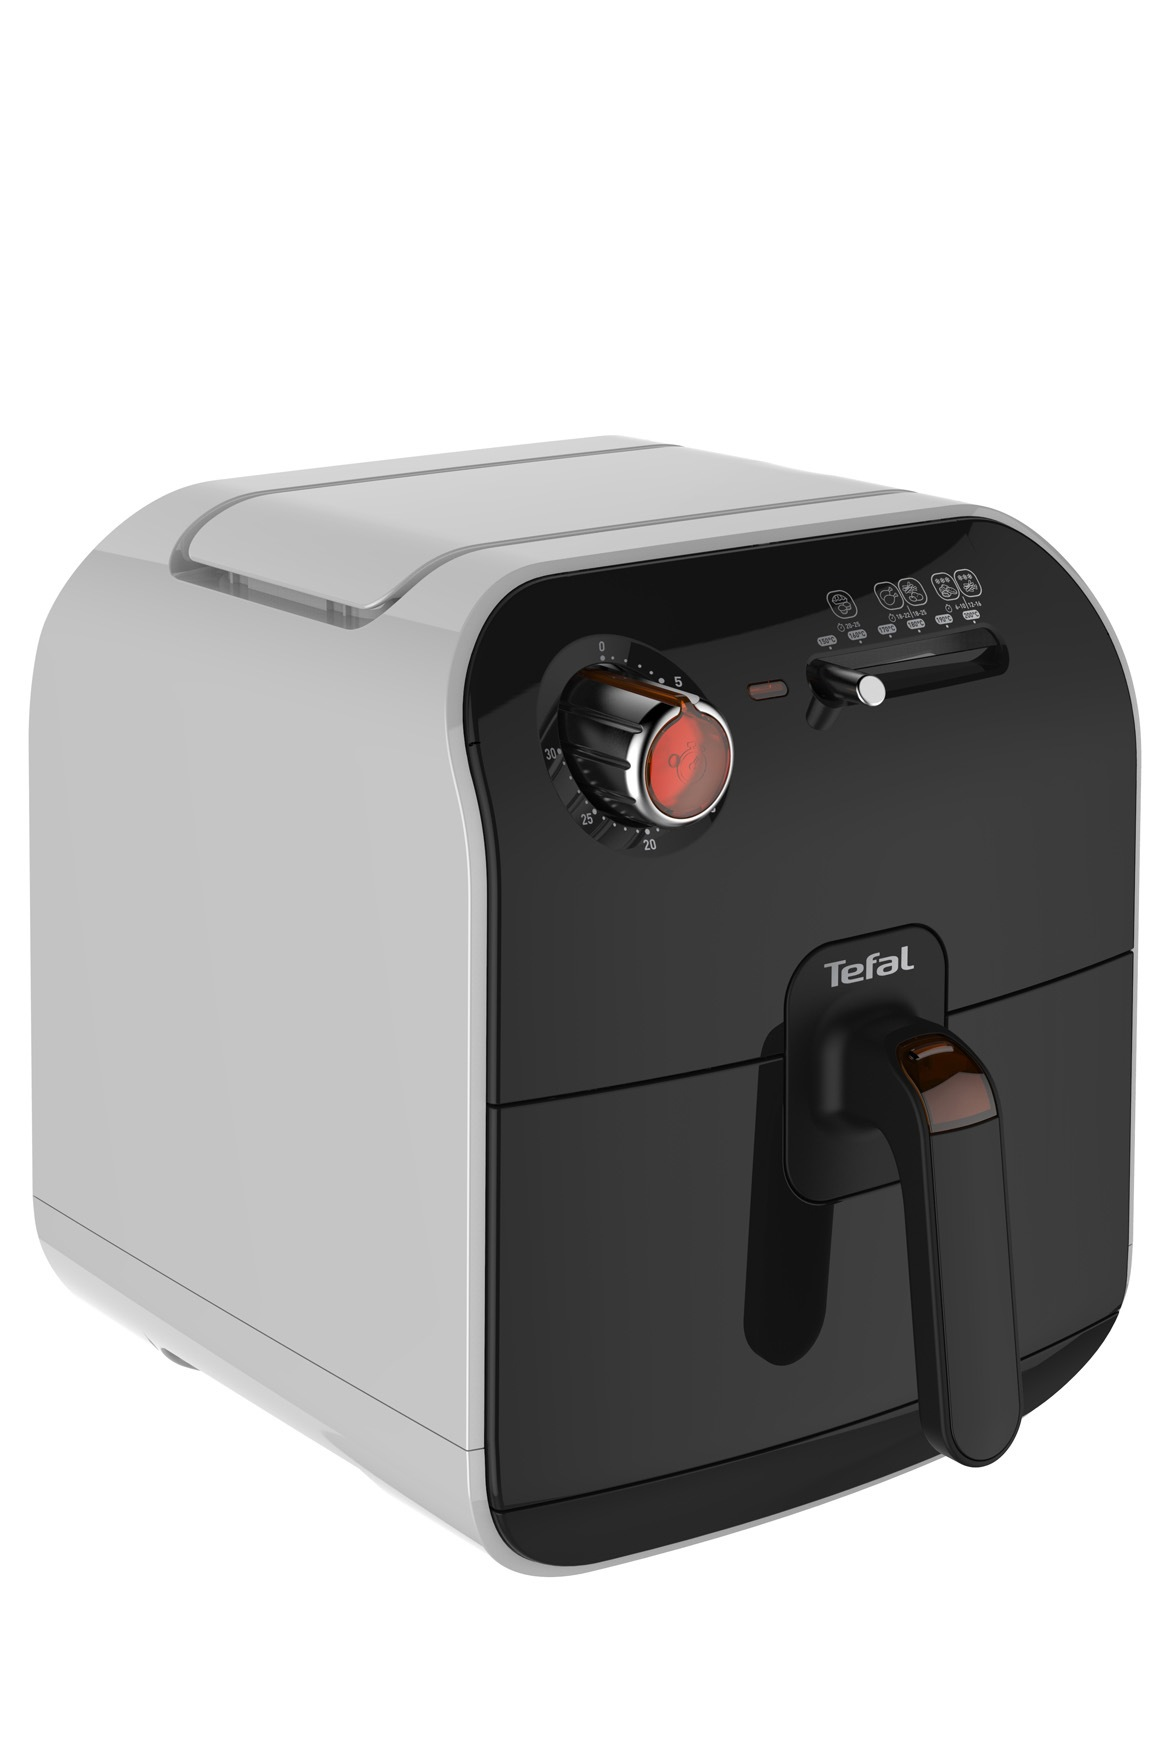 tefal fry delight air fryer white myer online. Black Bedroom Furniture Sets. Home Design Ideas